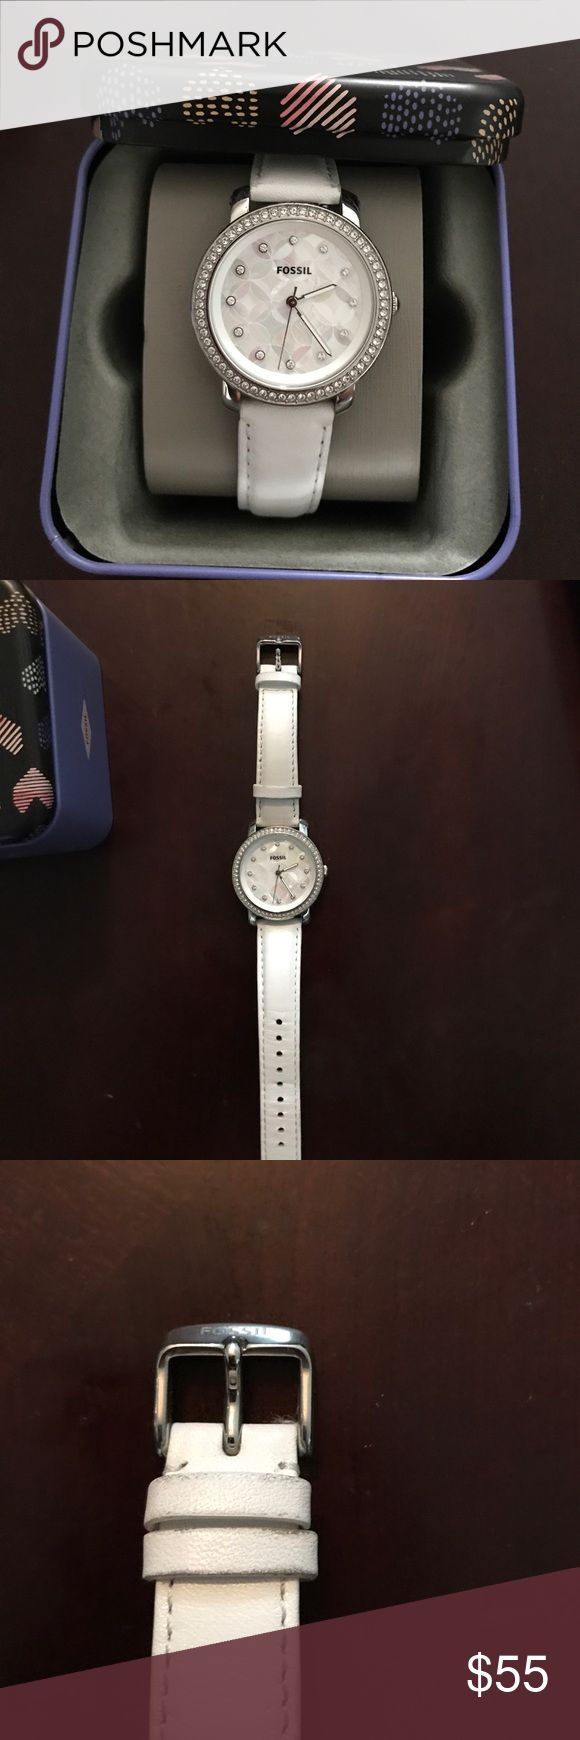 Women's Fossil Watch Fossil Emma Mother of Pearl Dial Watch with White leather band.  Preowned,functioning with new Watch battery and in great condition. Fossil watch box included in price. Fossil Jewelry